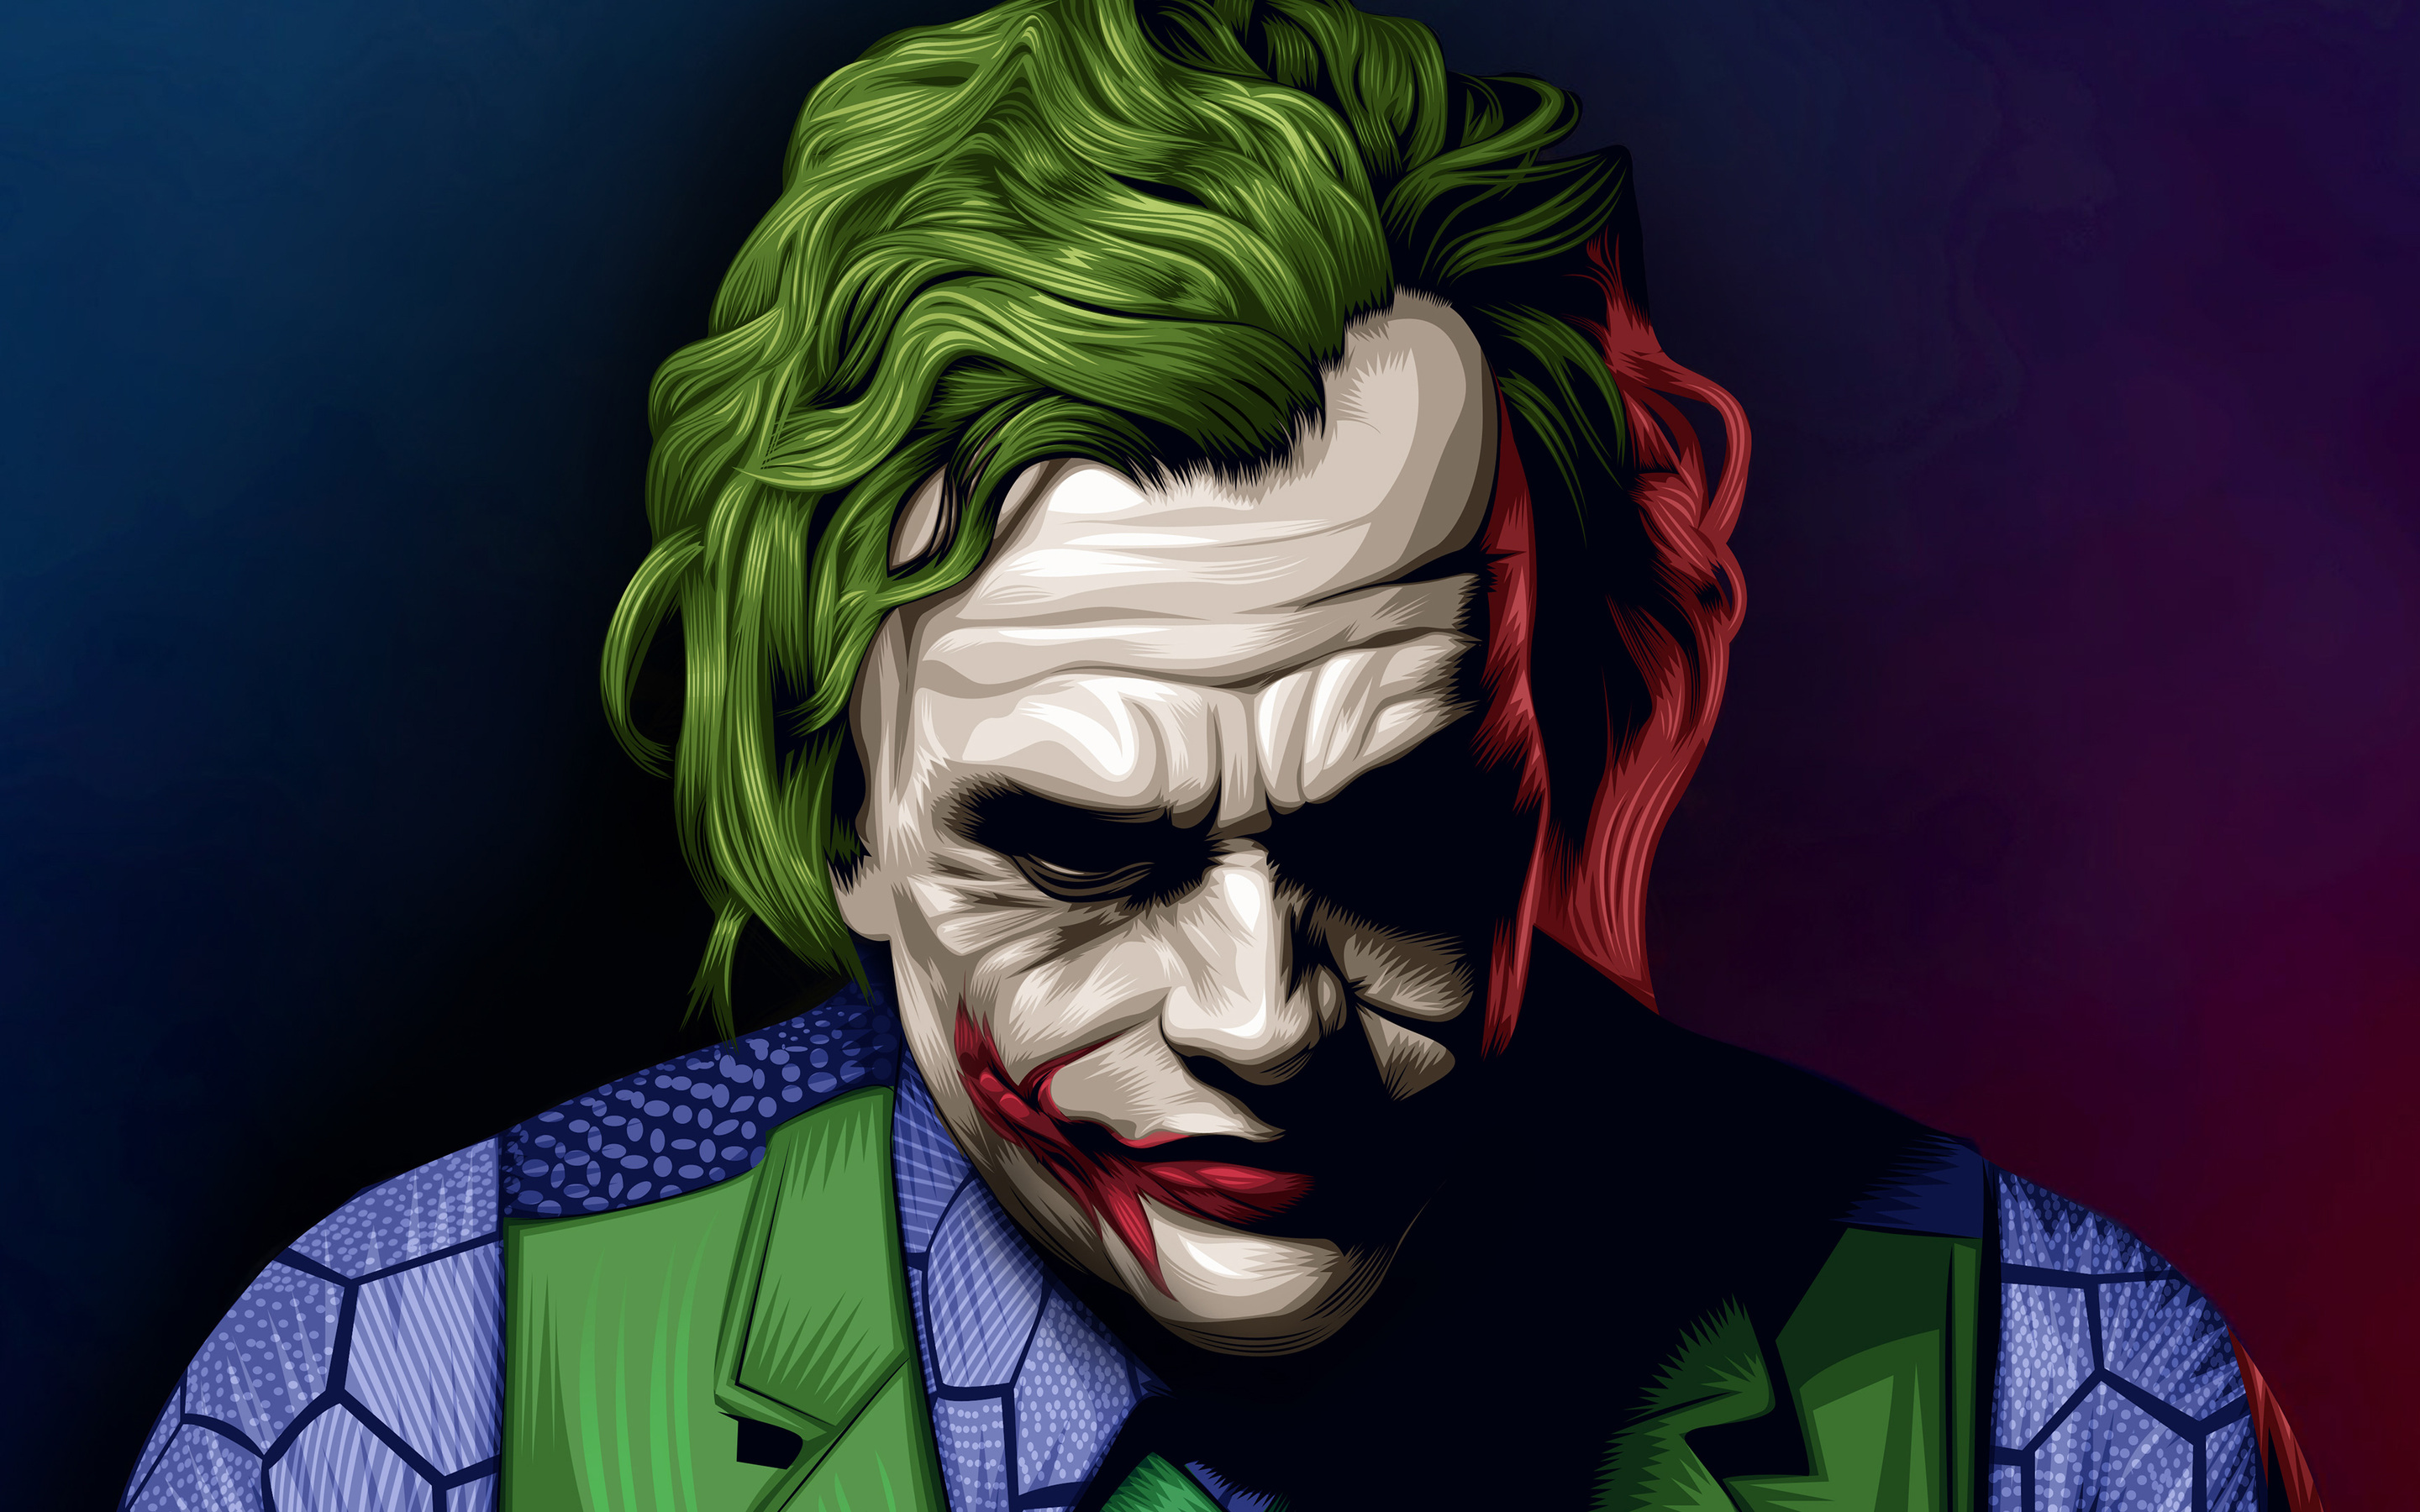 Heath Ledger Joker Wallpaper Amnet